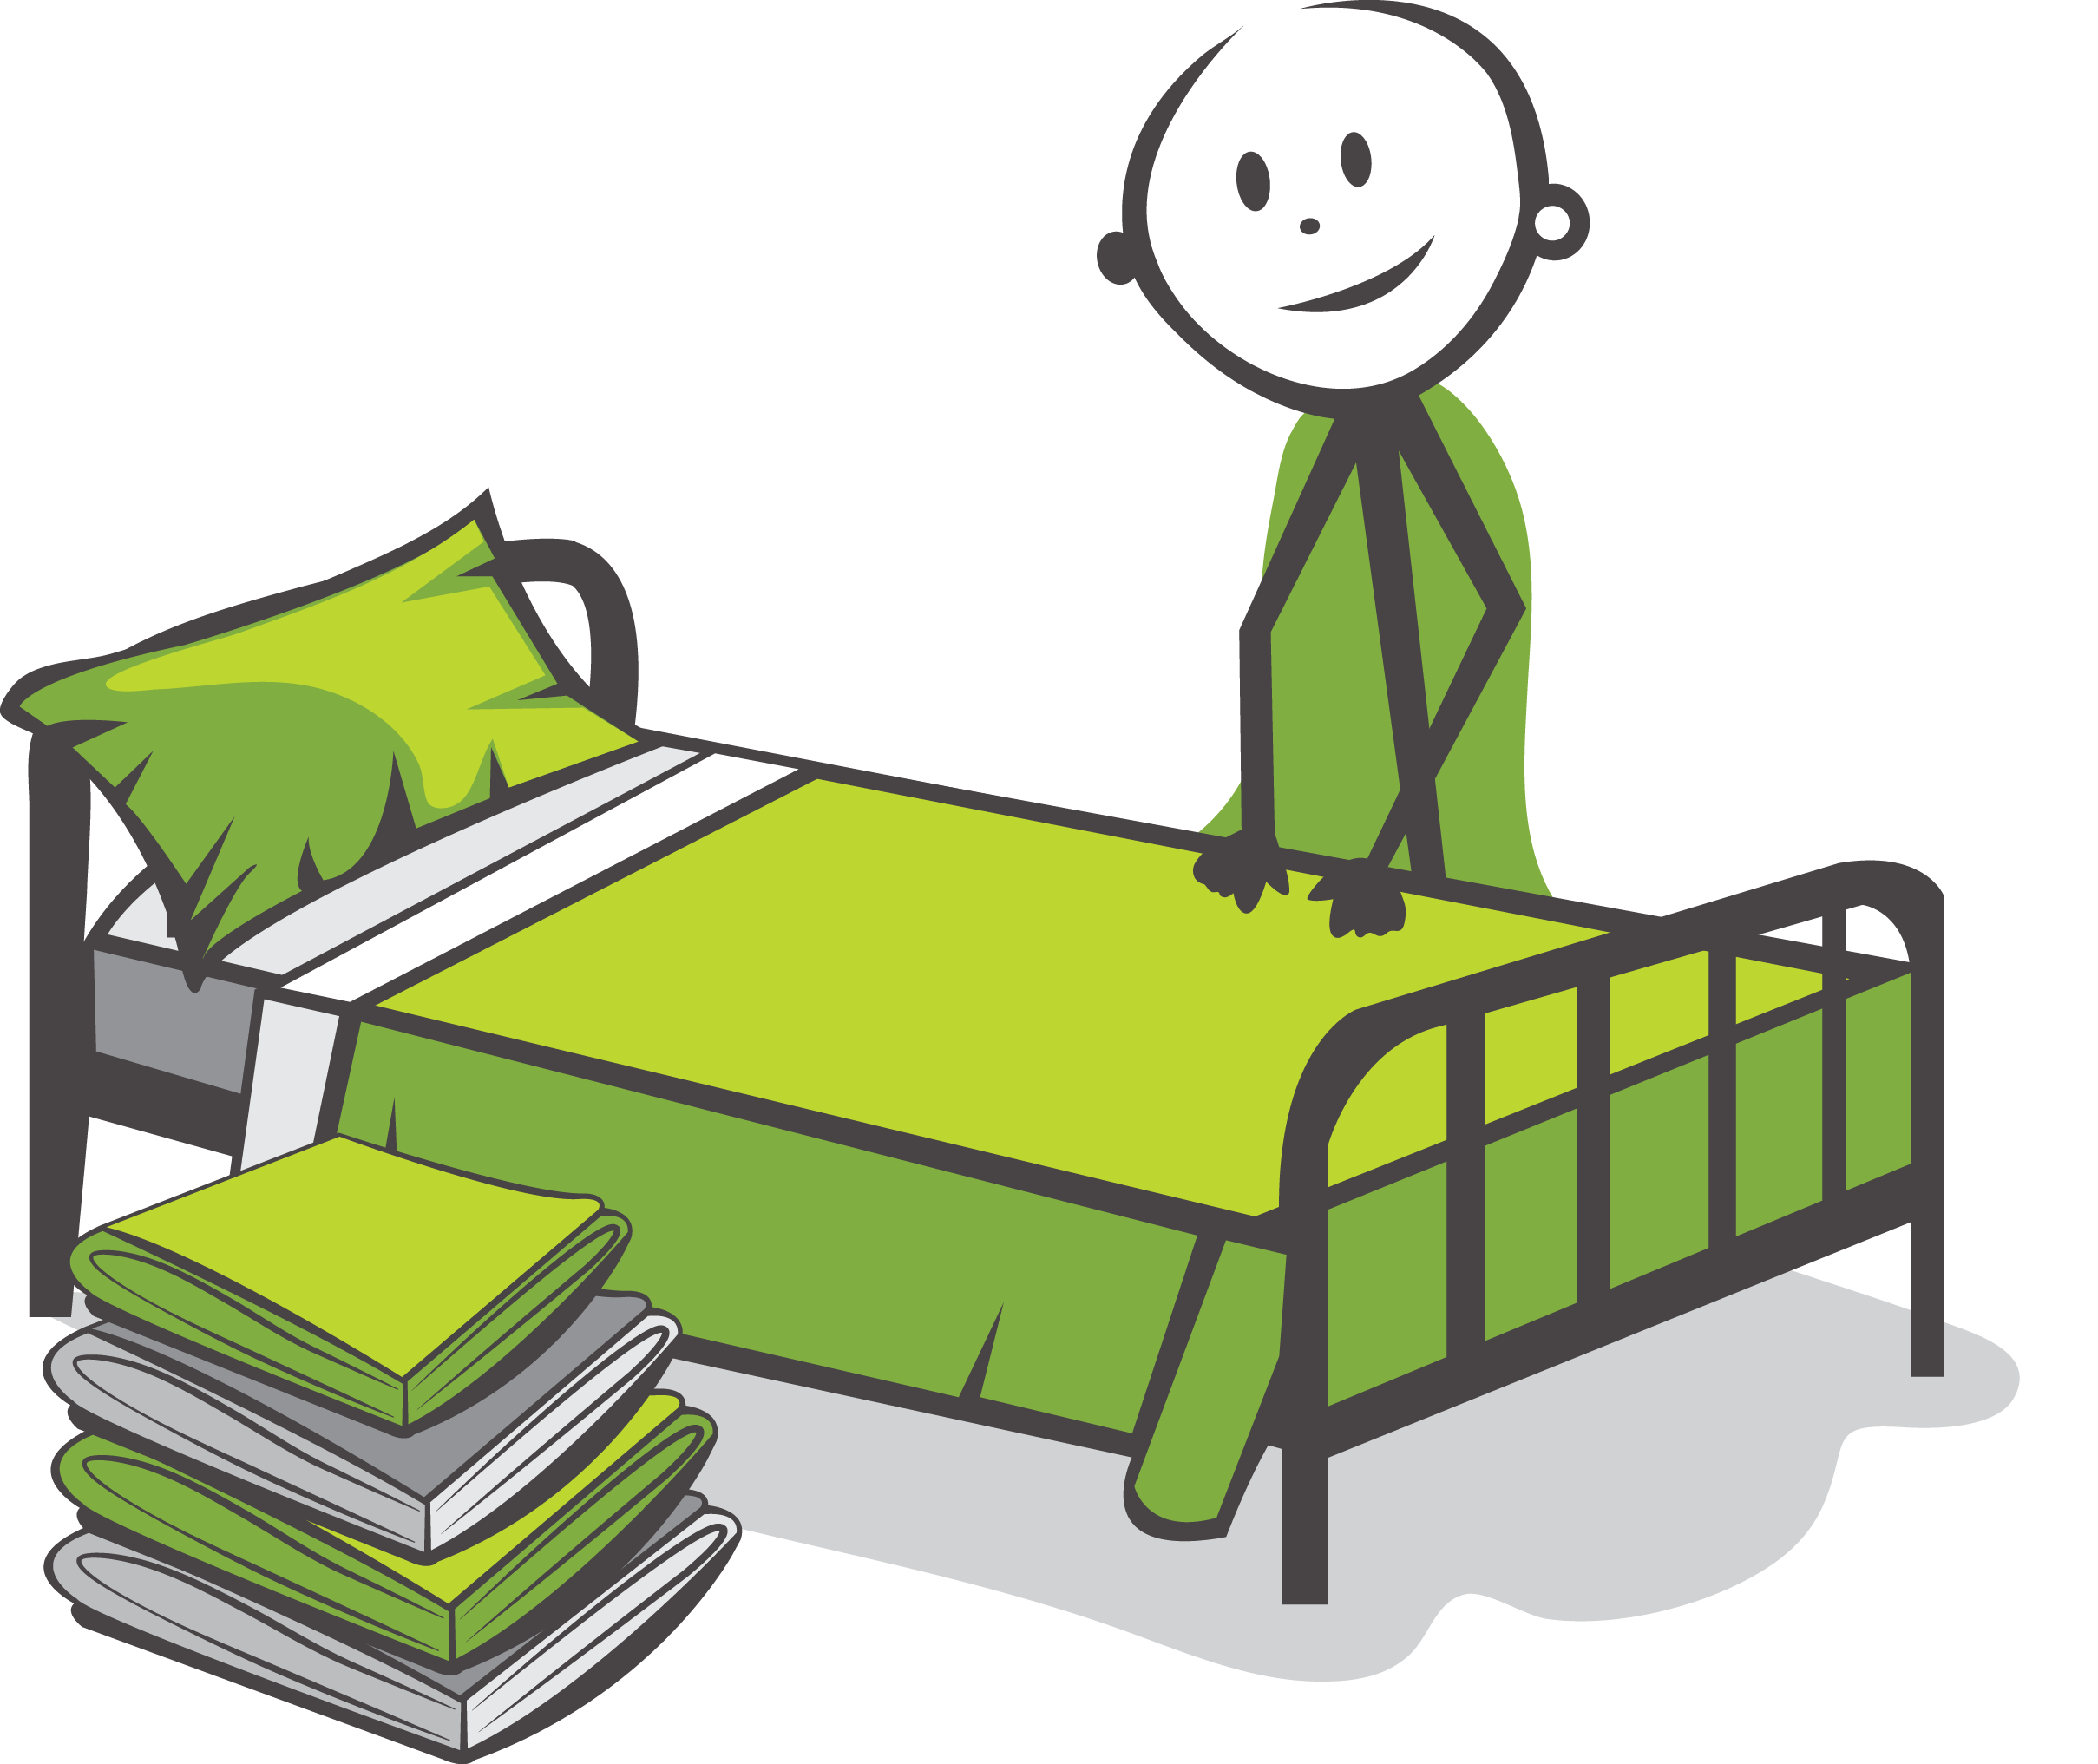 Clipart sleeping bed covers. About sleep titan learn